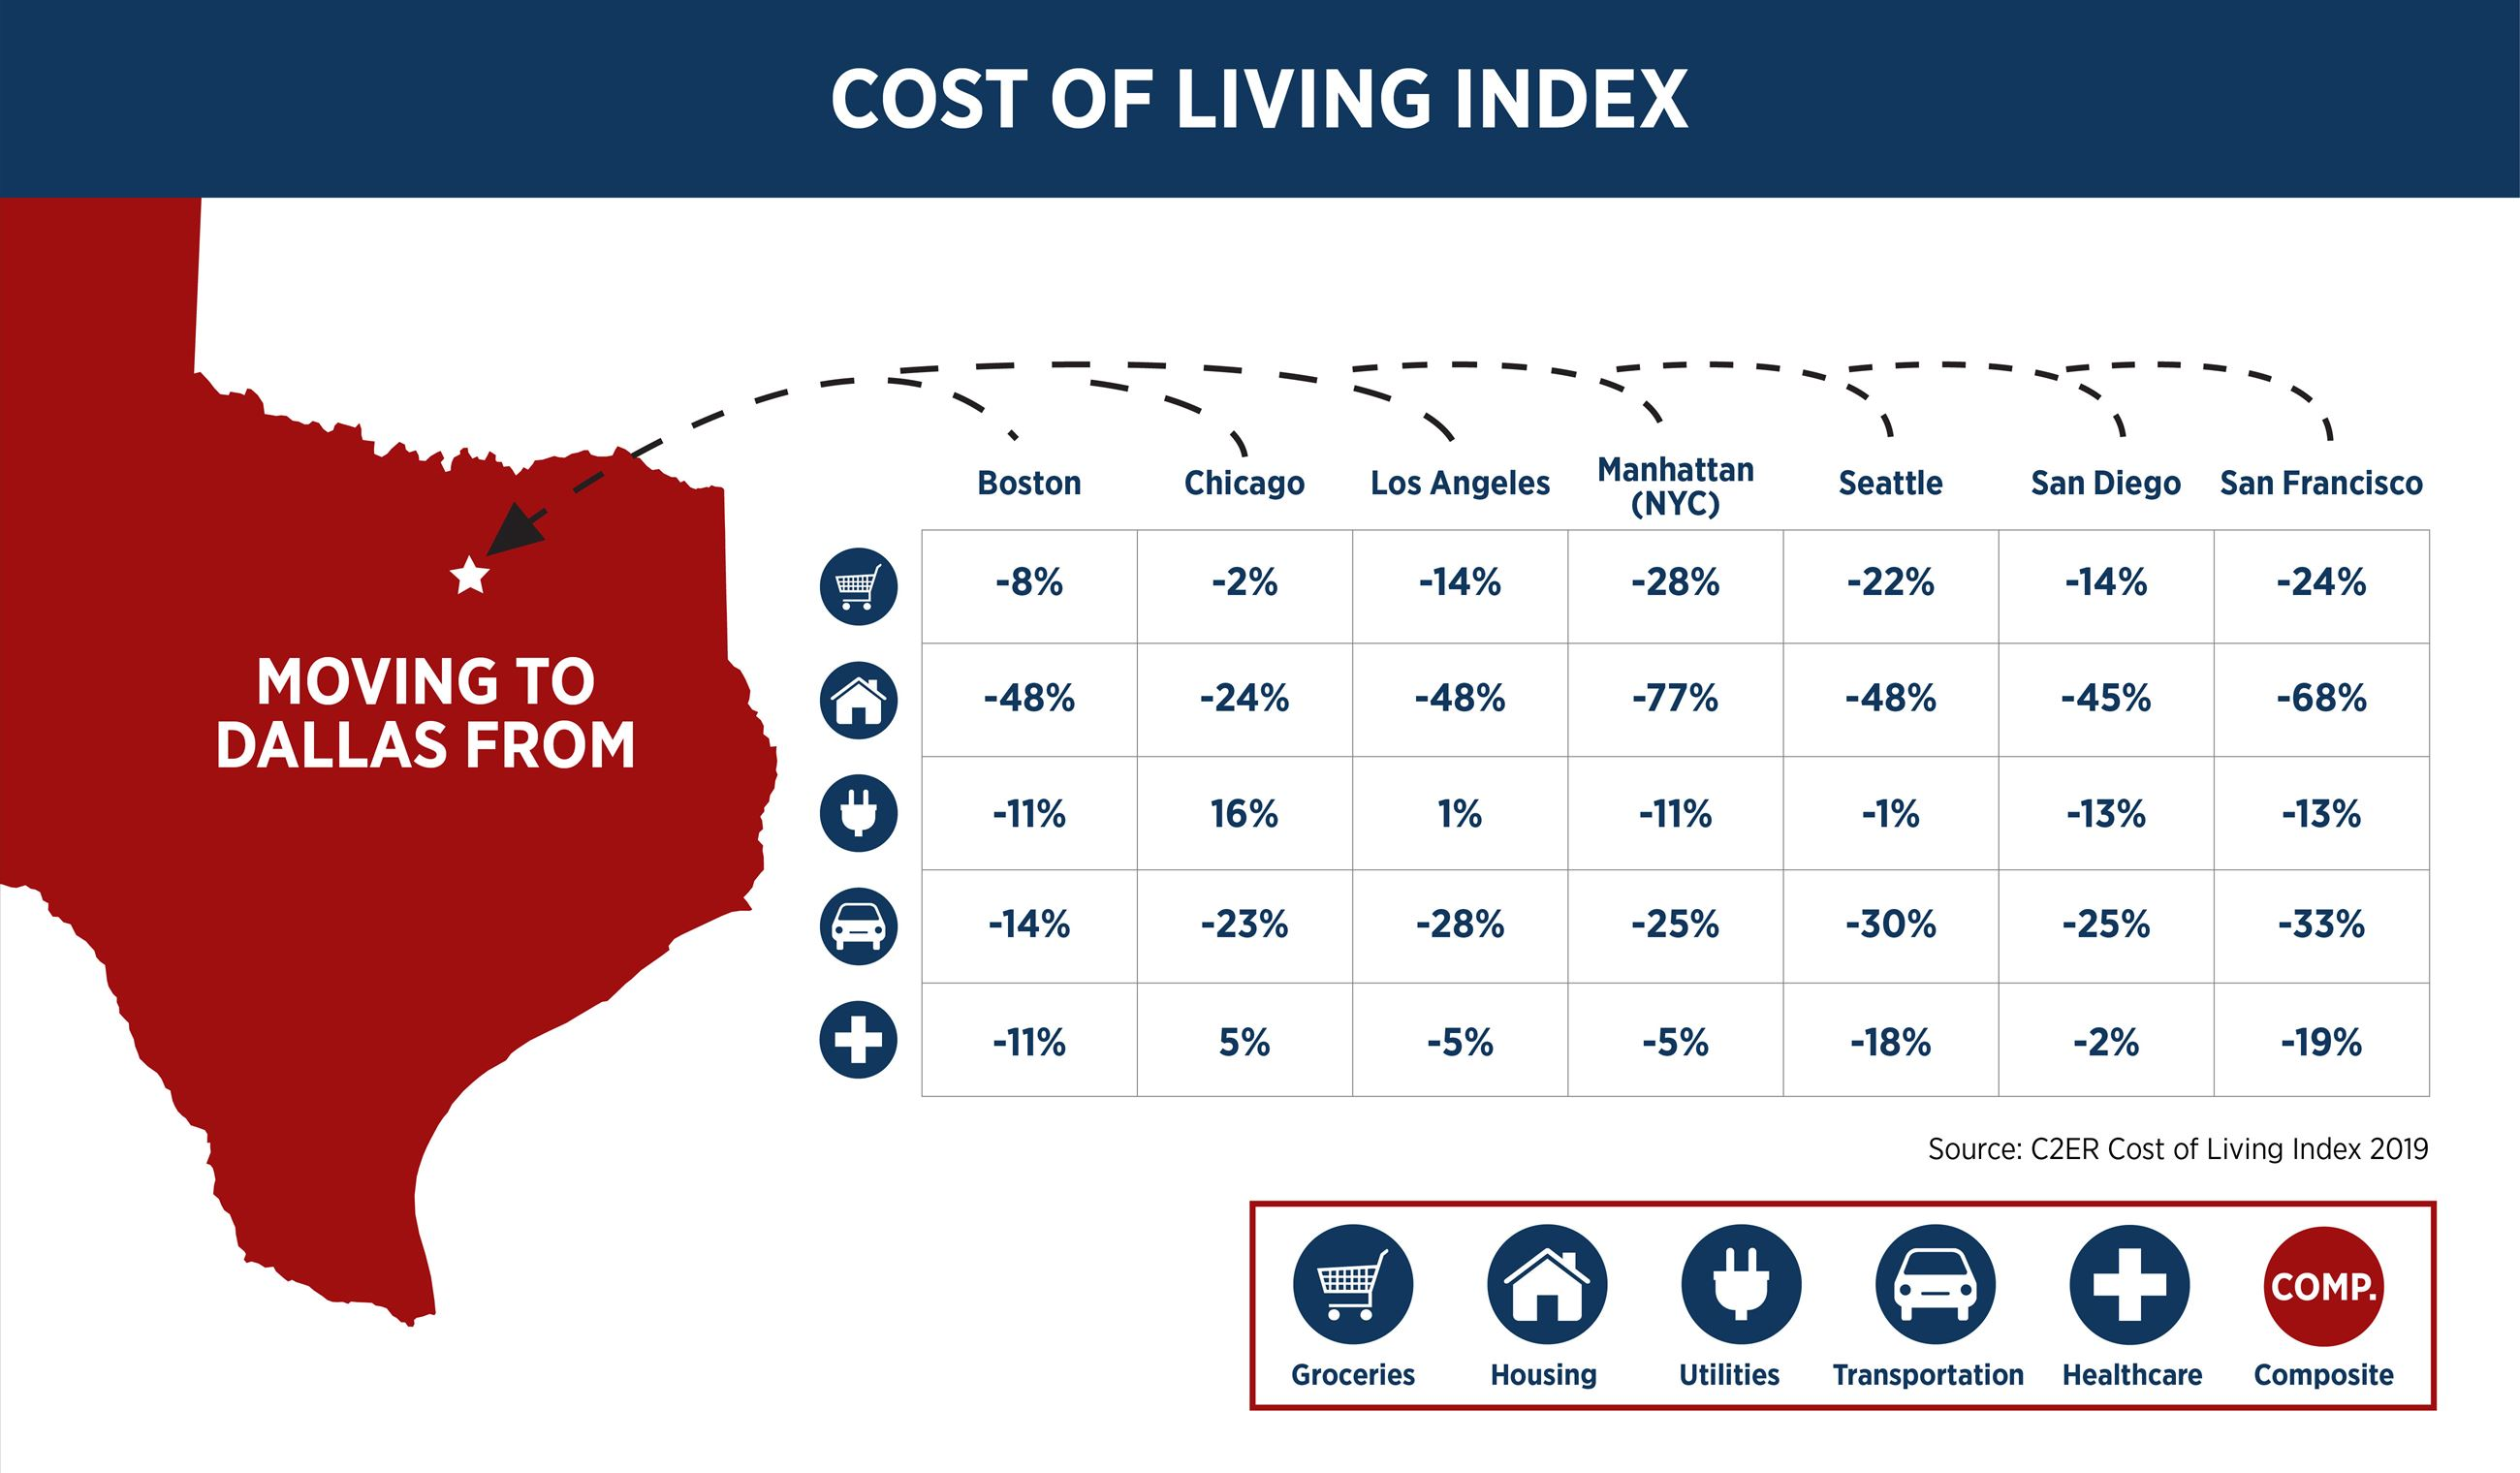 Cost of groceries, housing, etc after moving to Dallas from various US cities